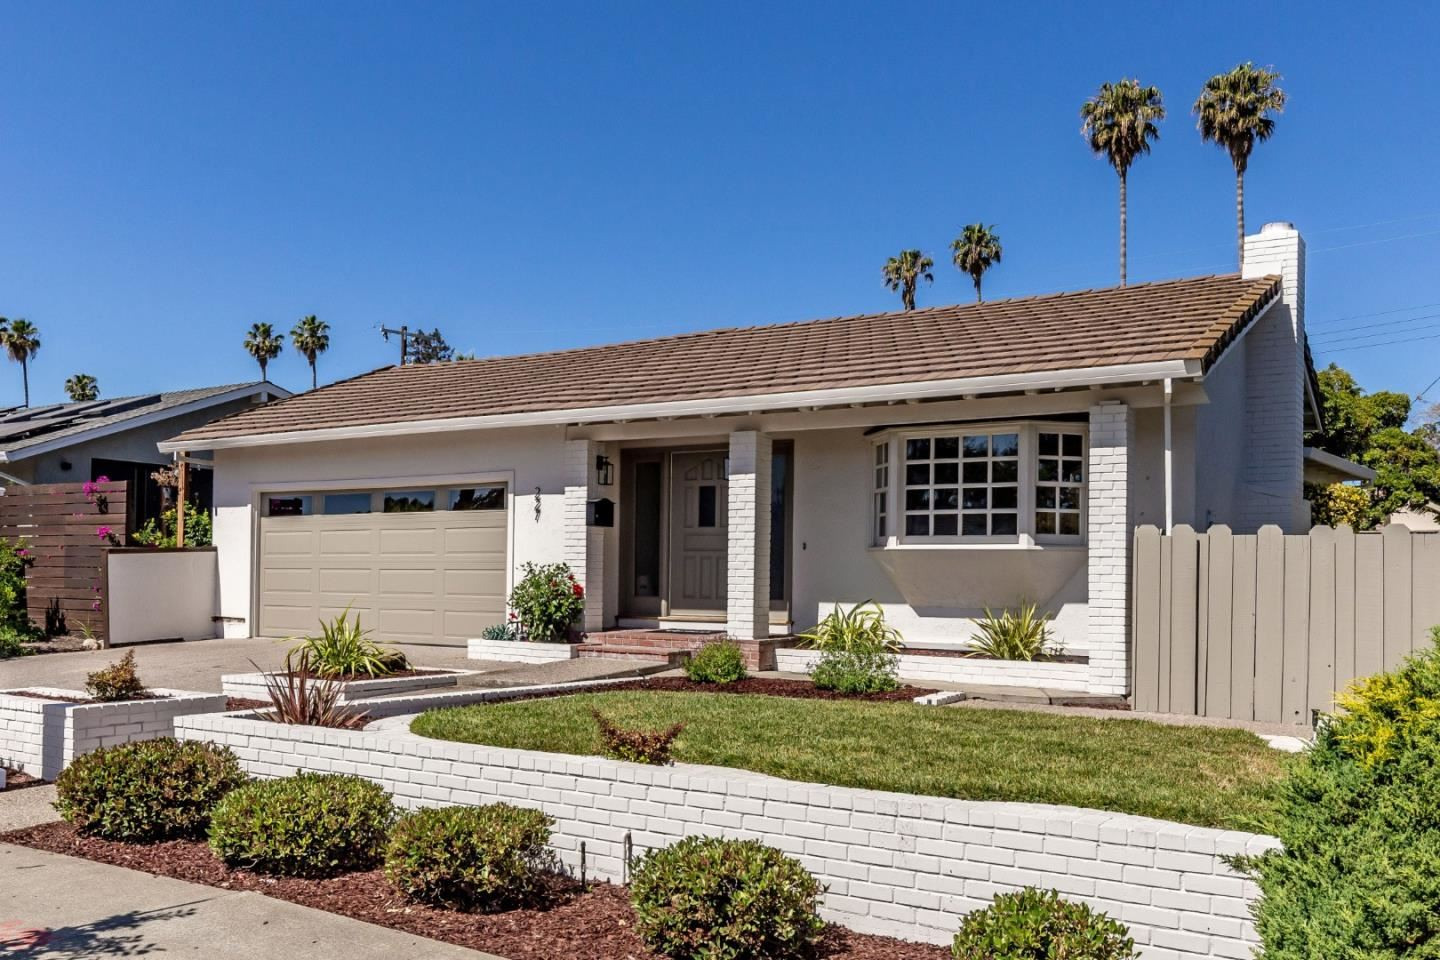 Photo for 227 Darryl Drive, CAMPBELL, CA 95008 (MLS # ML81844959)